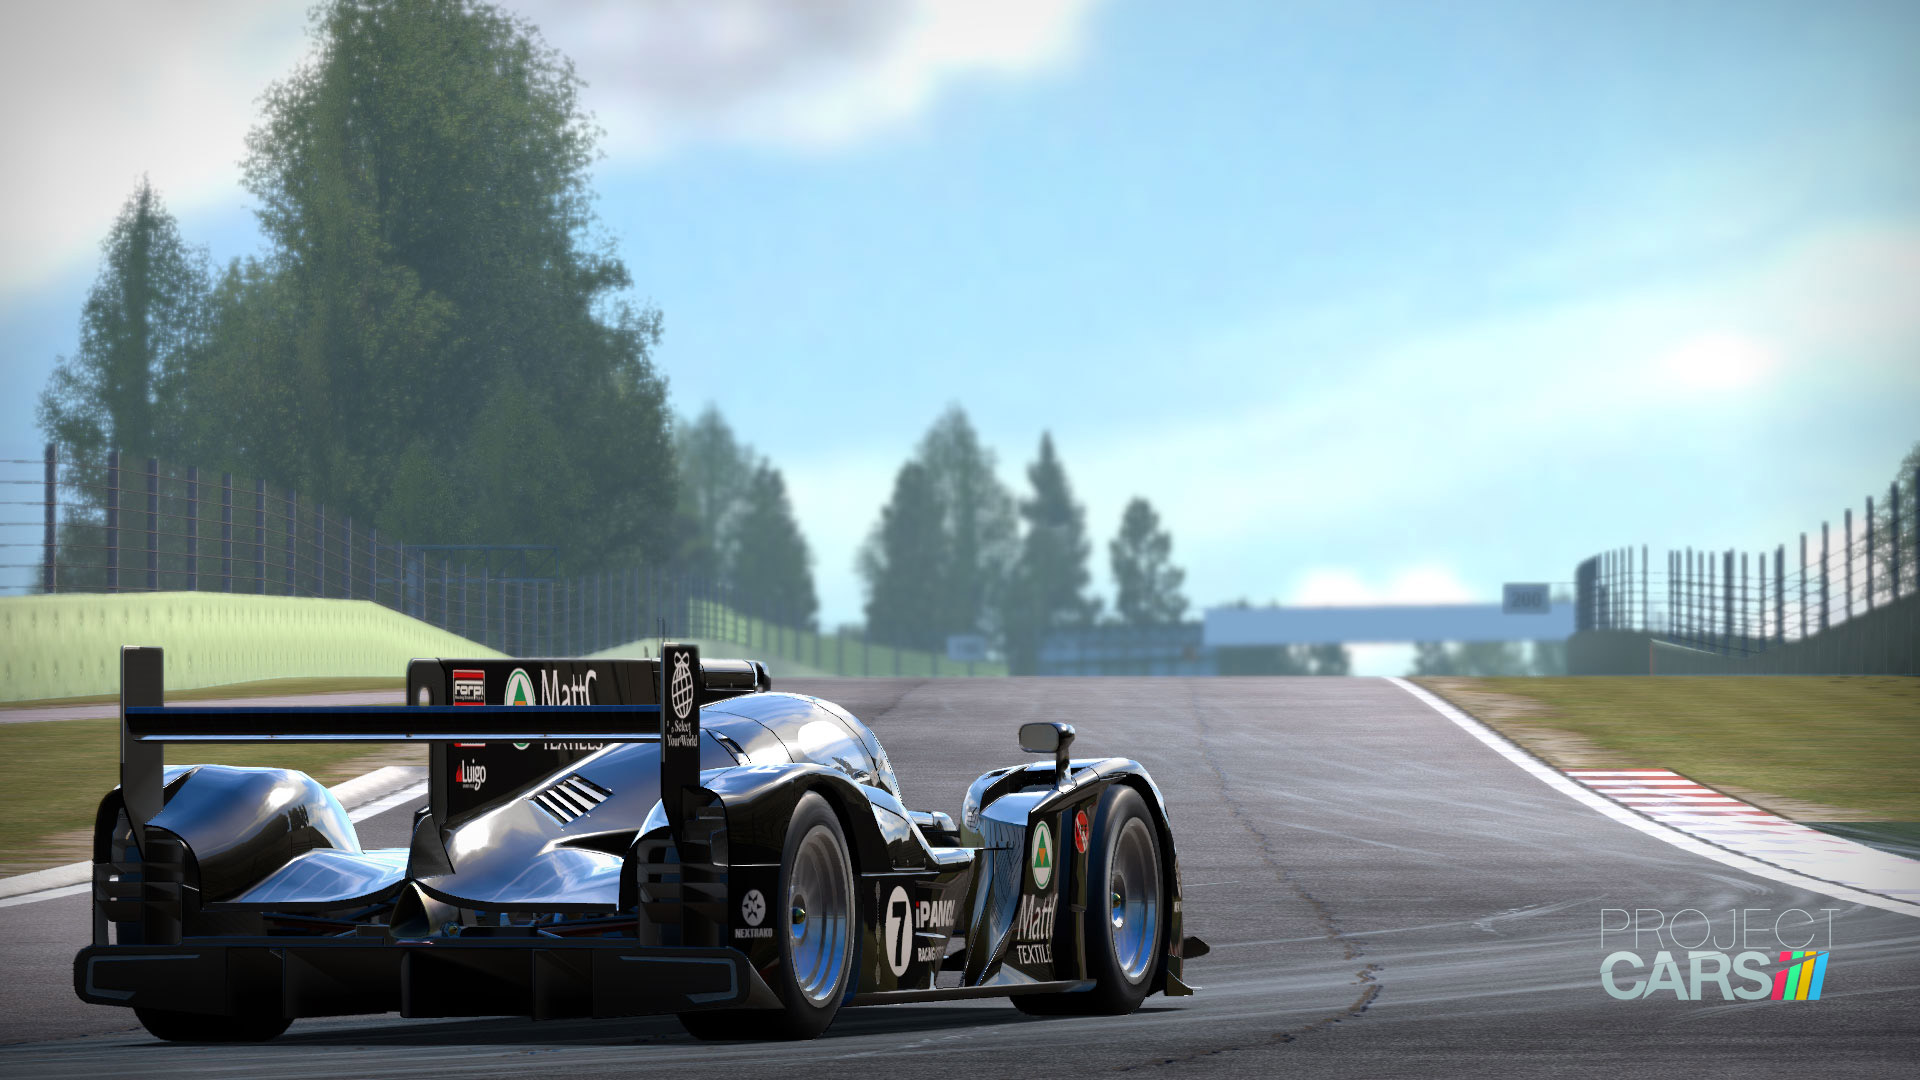 Free Project Cars Wallpaper in 1920x1080